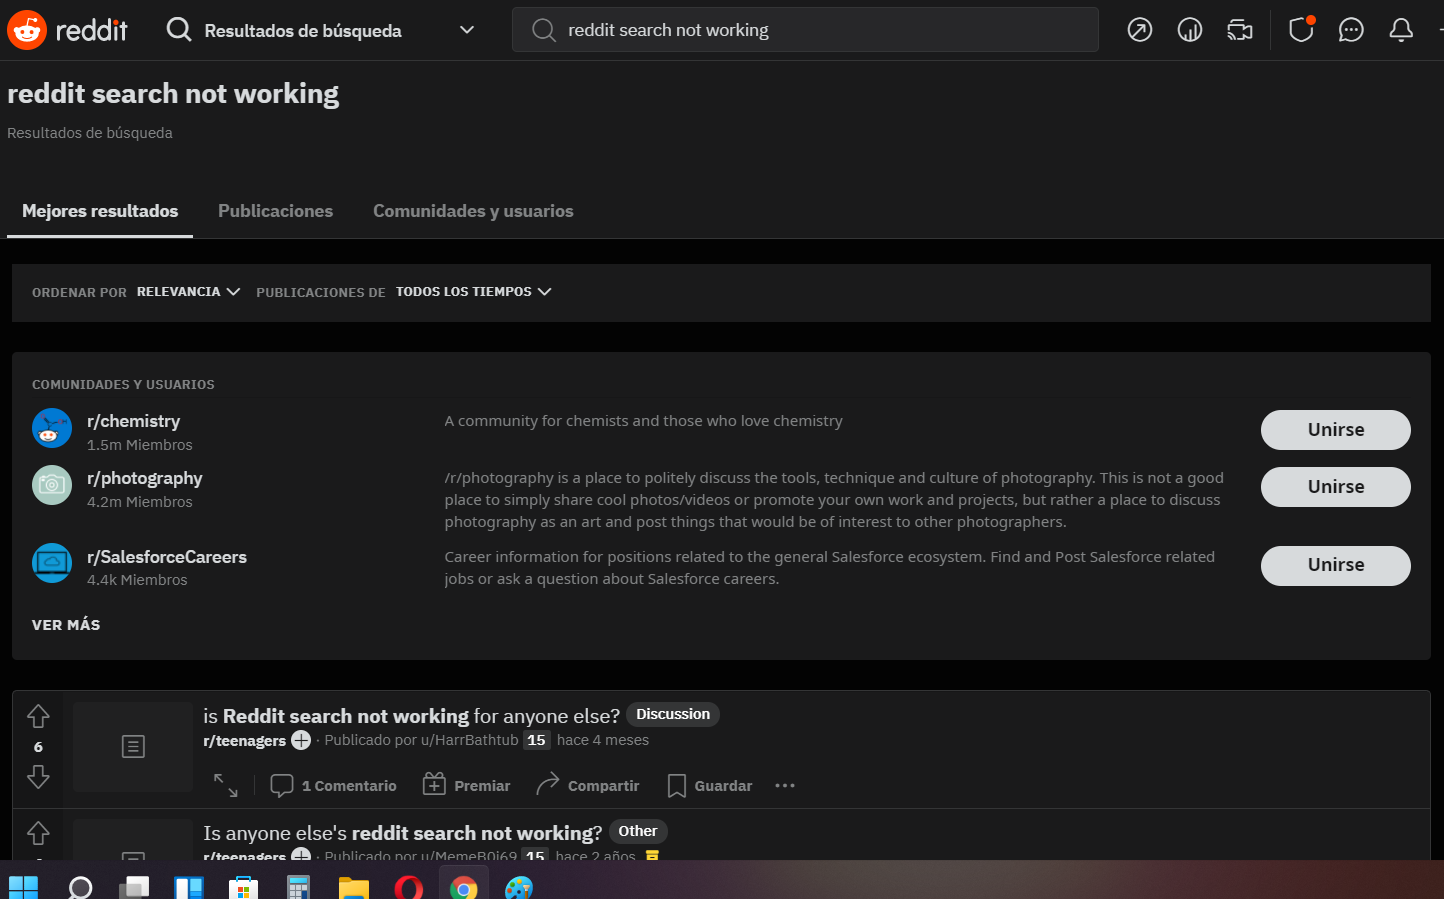 reddit search not working issue